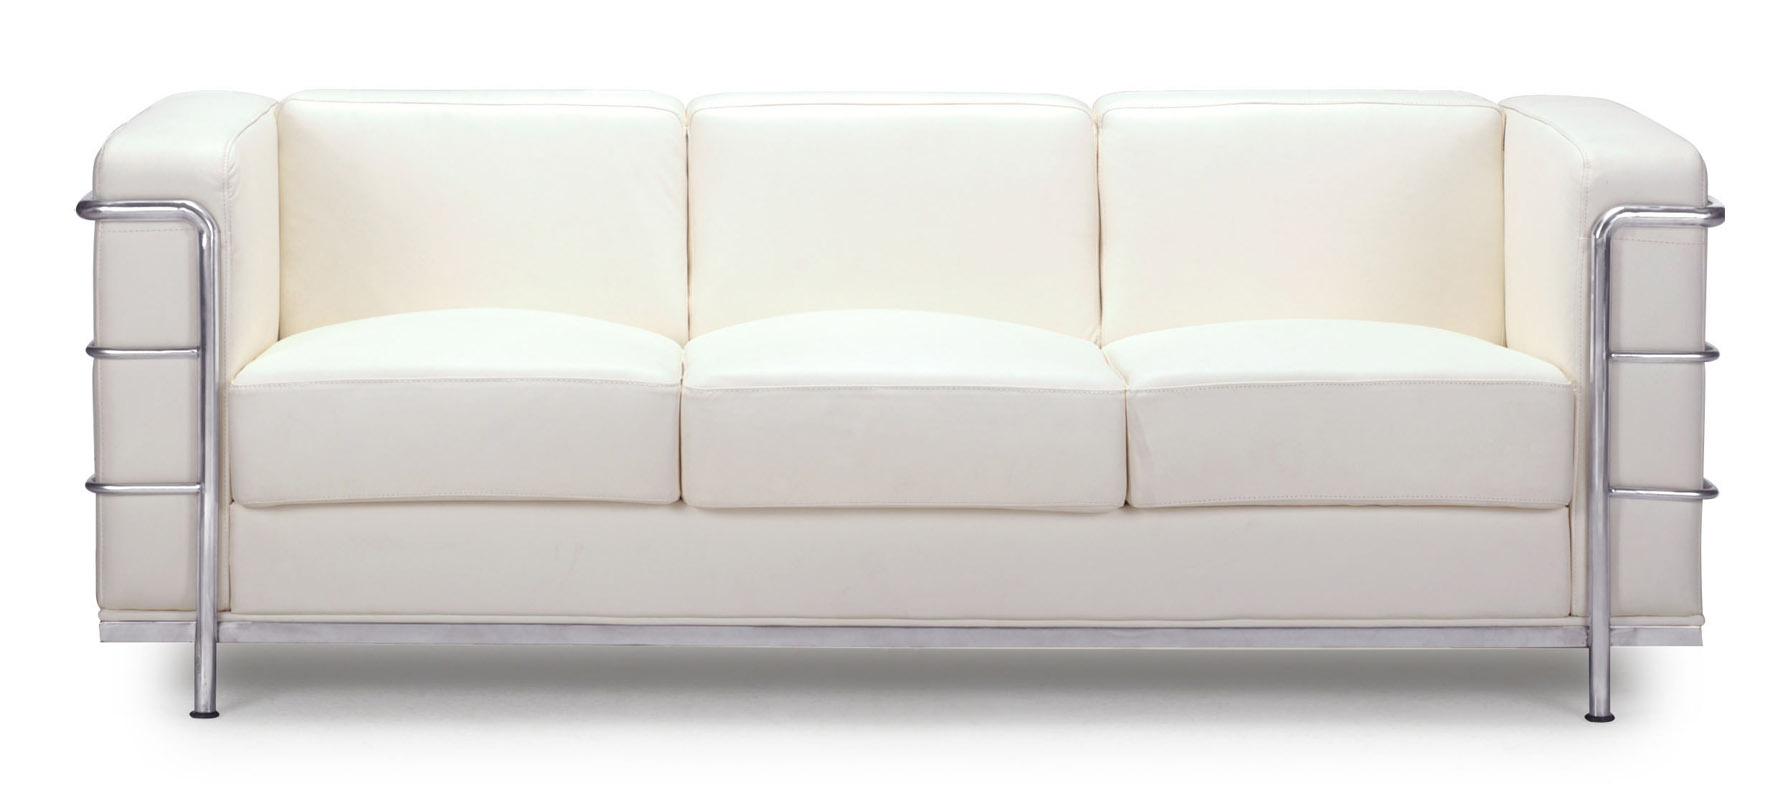 steel frame sofa cheep renny modern leather with chromed white zuri free shipping